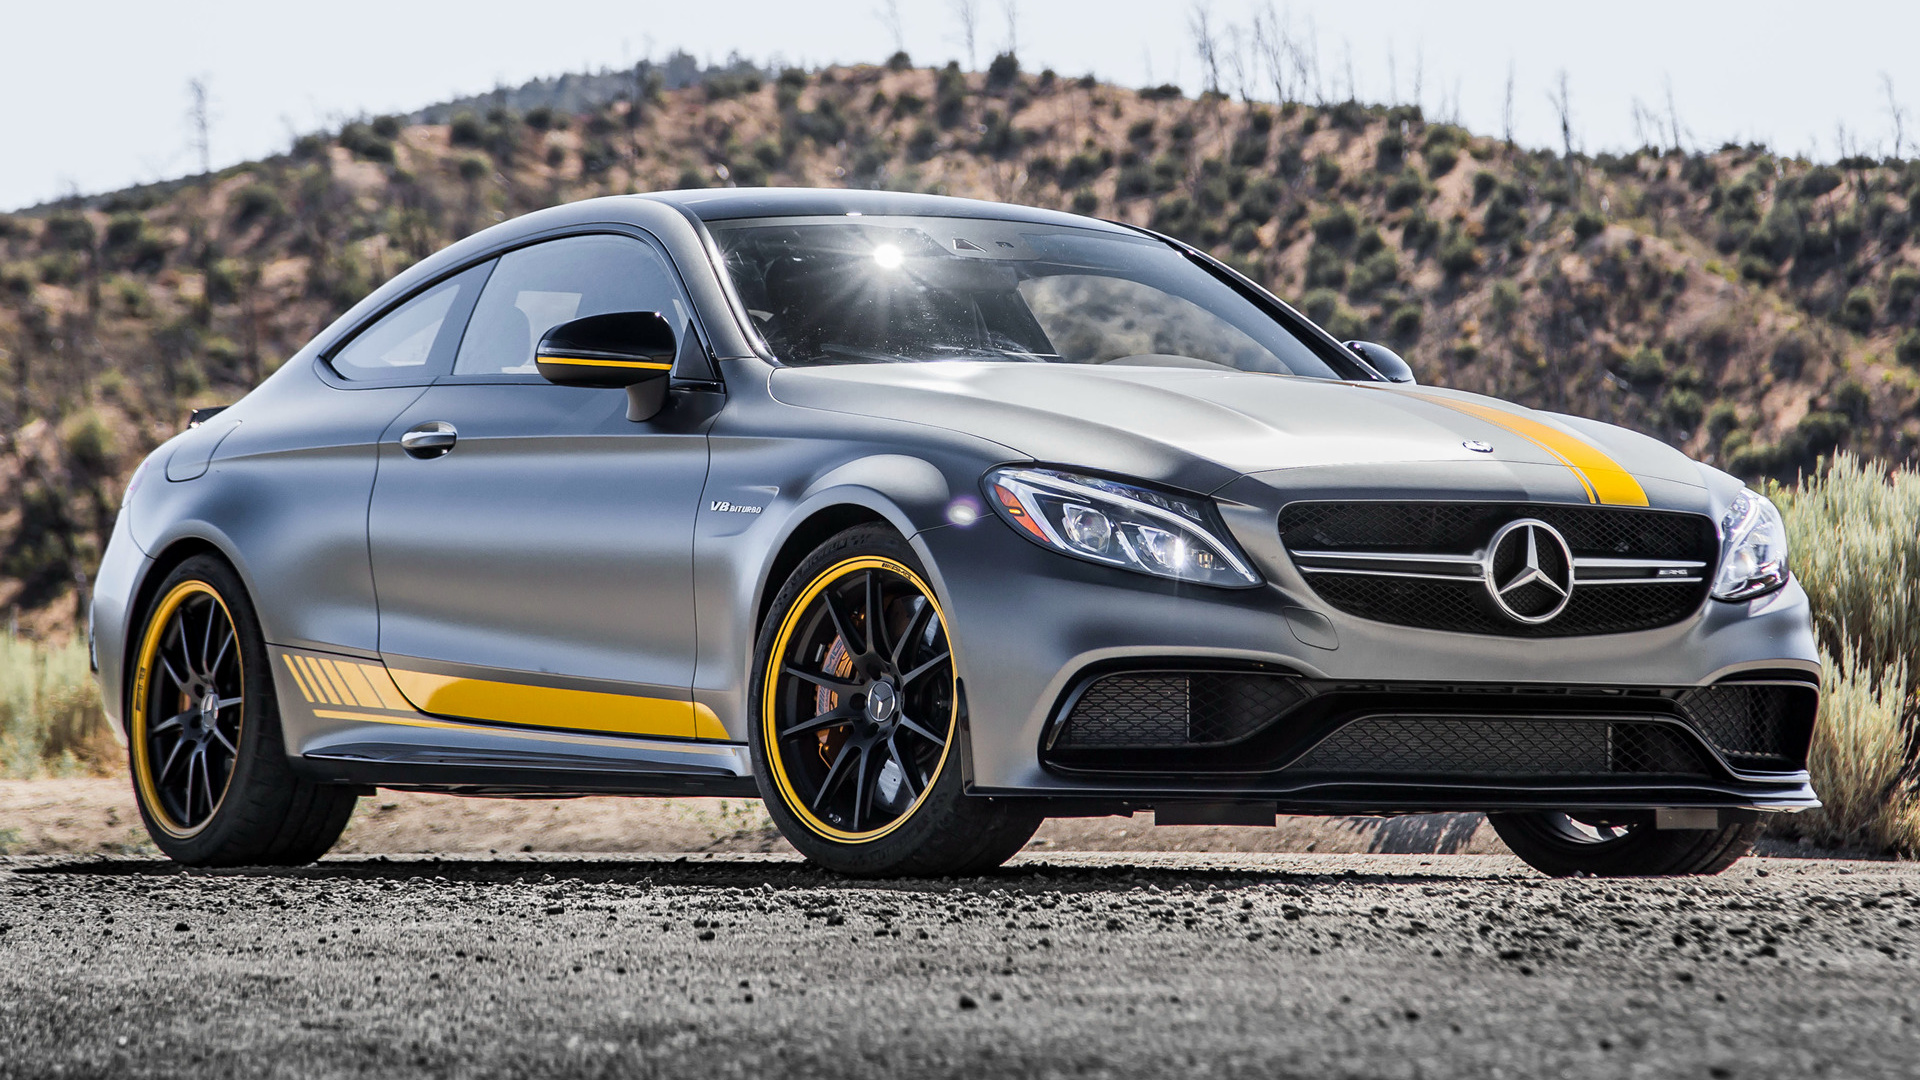 2016 Hyundai Genesis Coupe >> 2017 Mercedes-AMG C 63 S Coupe Edition 1 (US) - Wallpapers and HD Images | Car Pixel